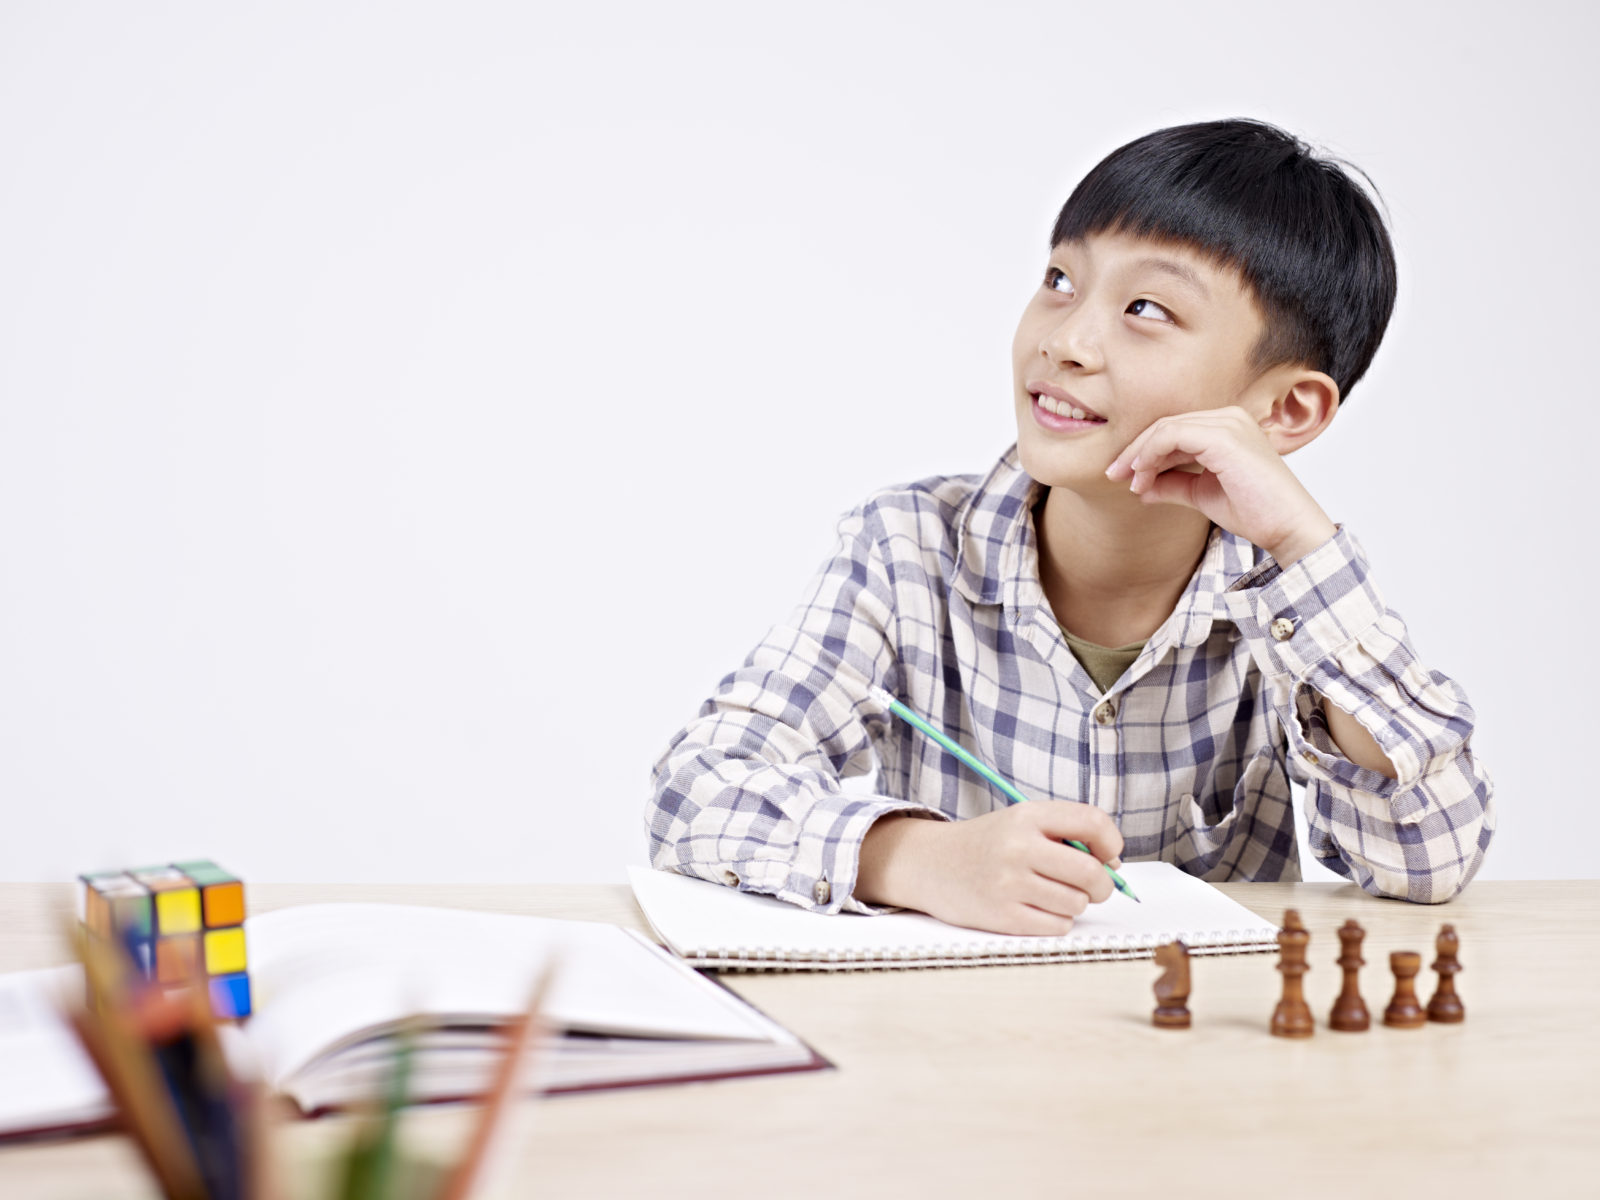 10 year-old asian elementary schoolboy looking away while studying.